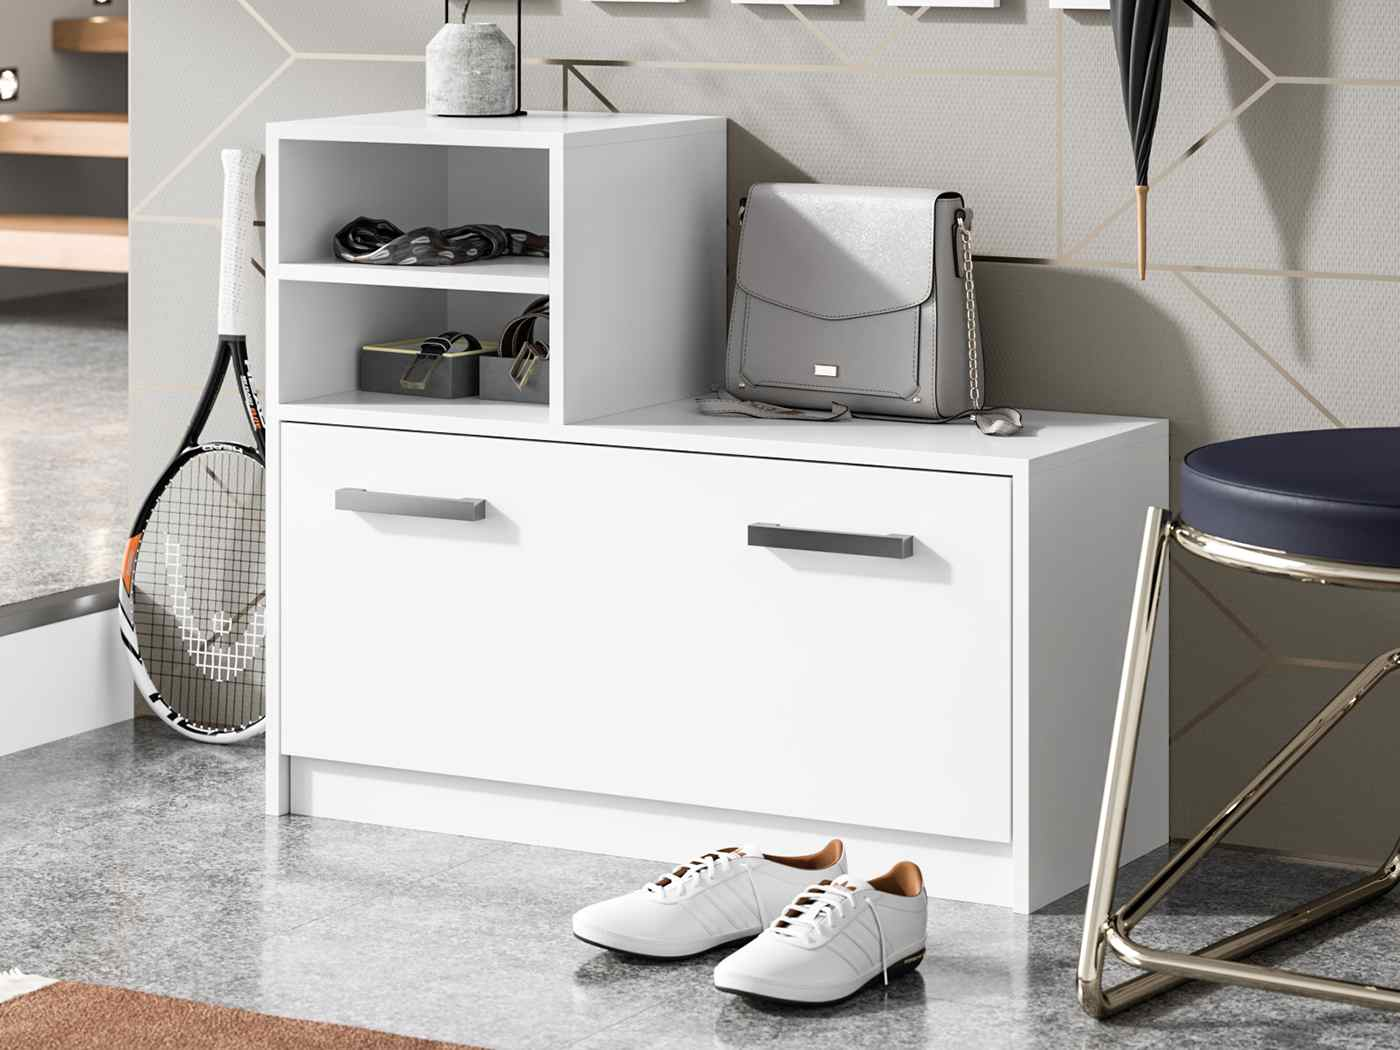 Shoe cabinet Ruby coulour white matte